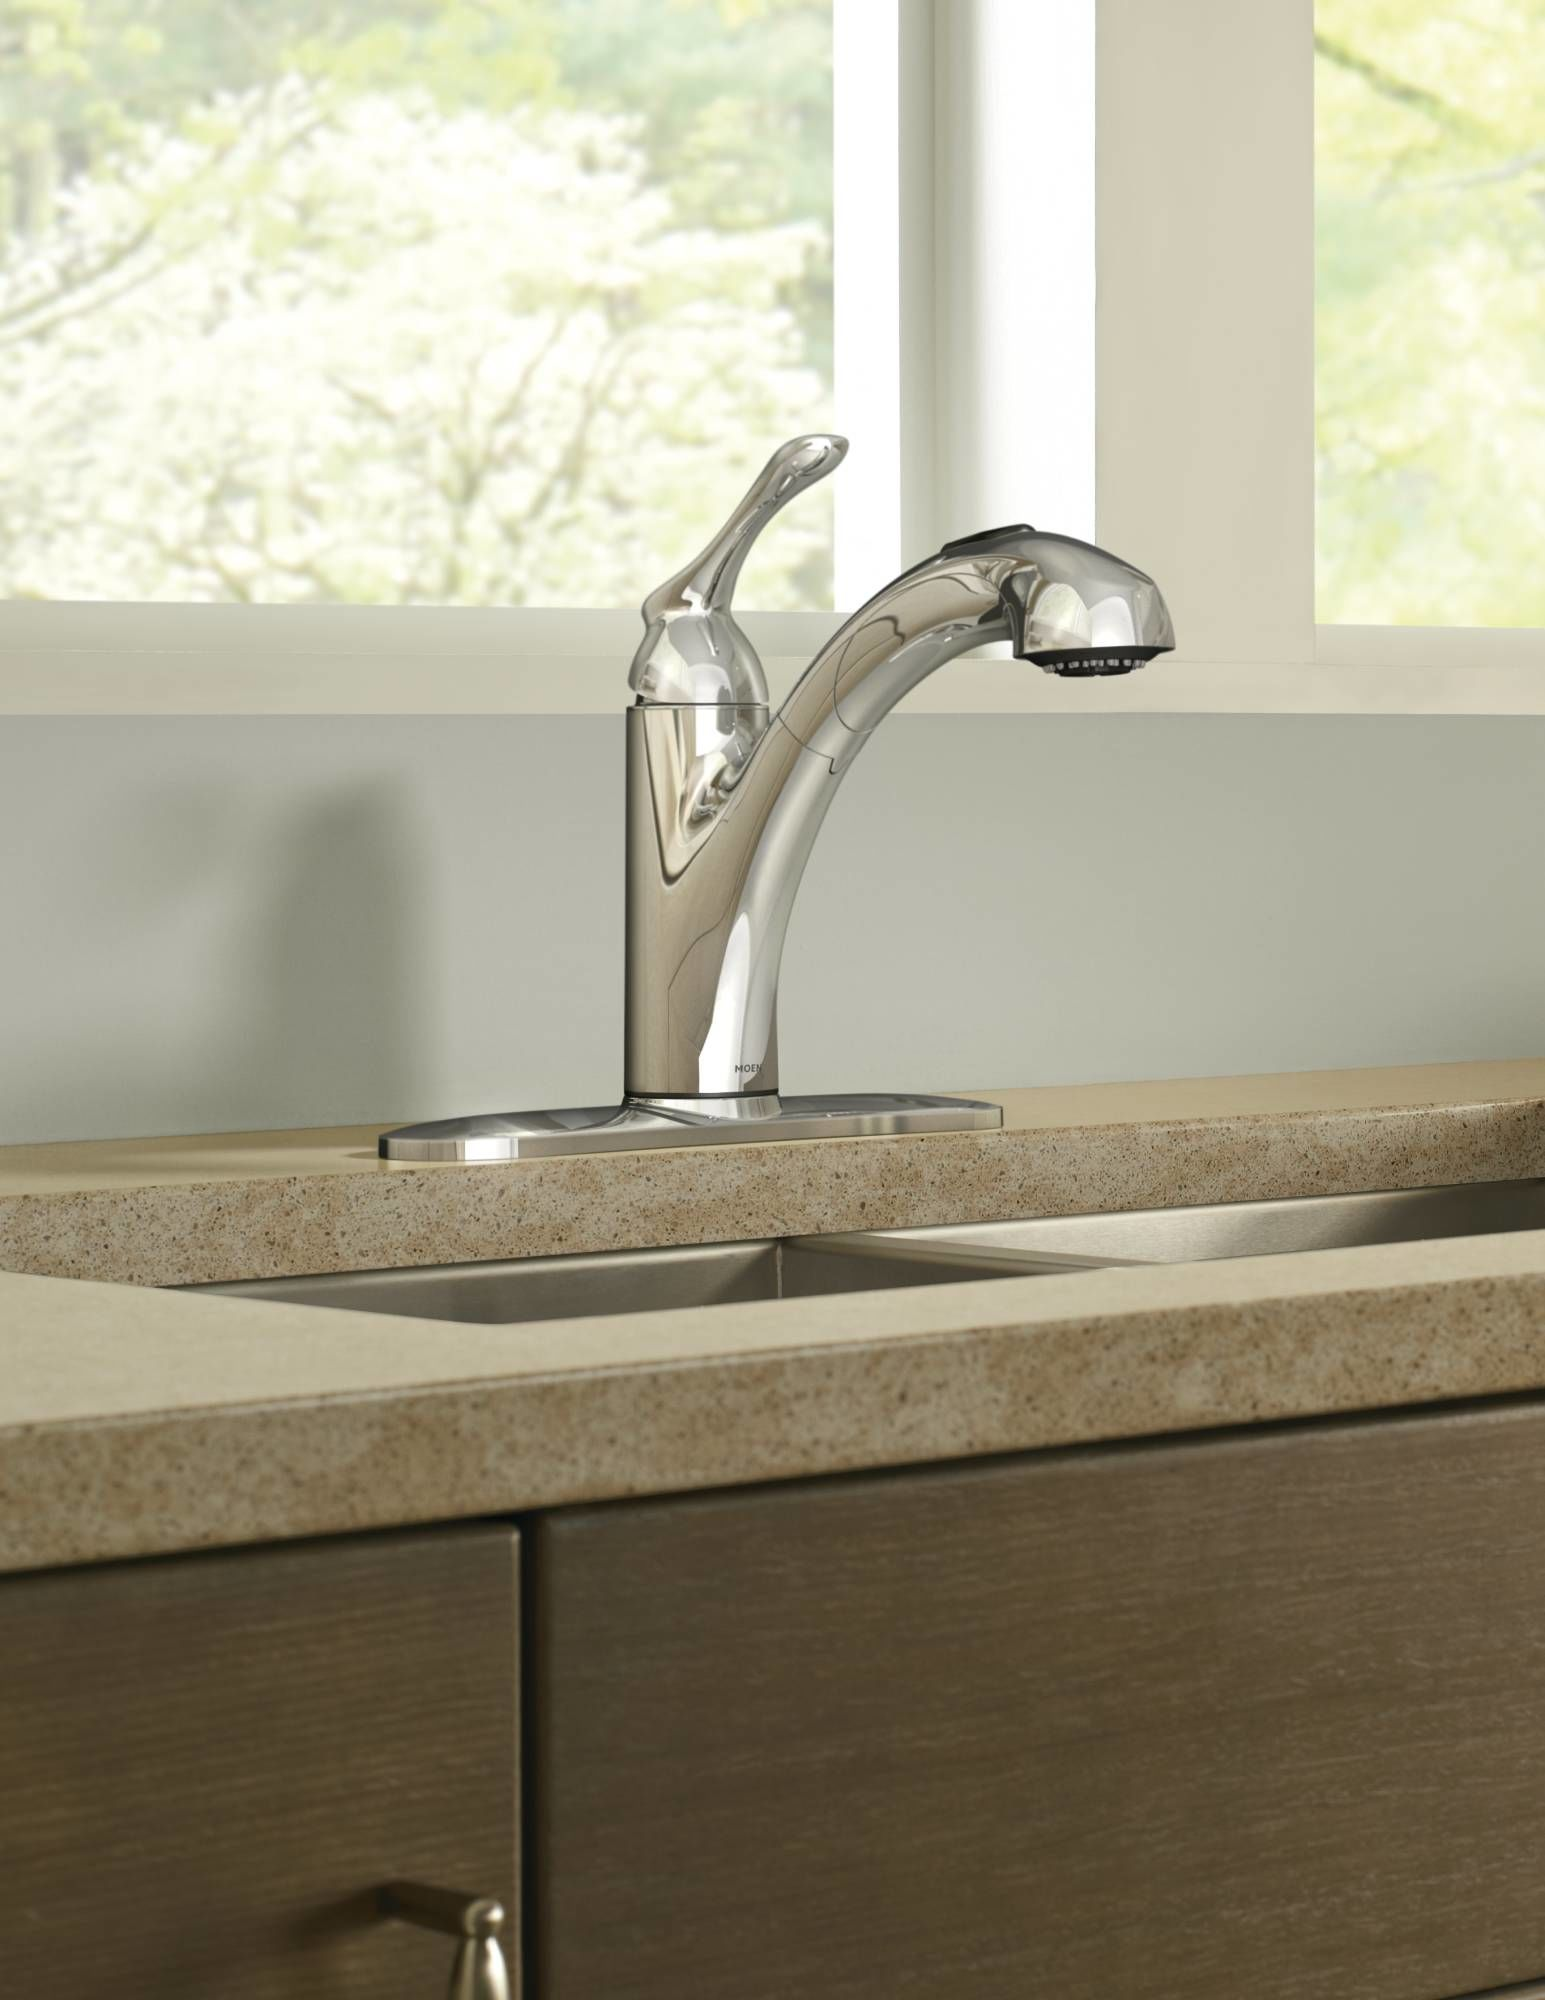 Superieur Moen 87017 Chrome Pullout Spray Kitchen Faucet From The Banbury Collection    Faucet.com